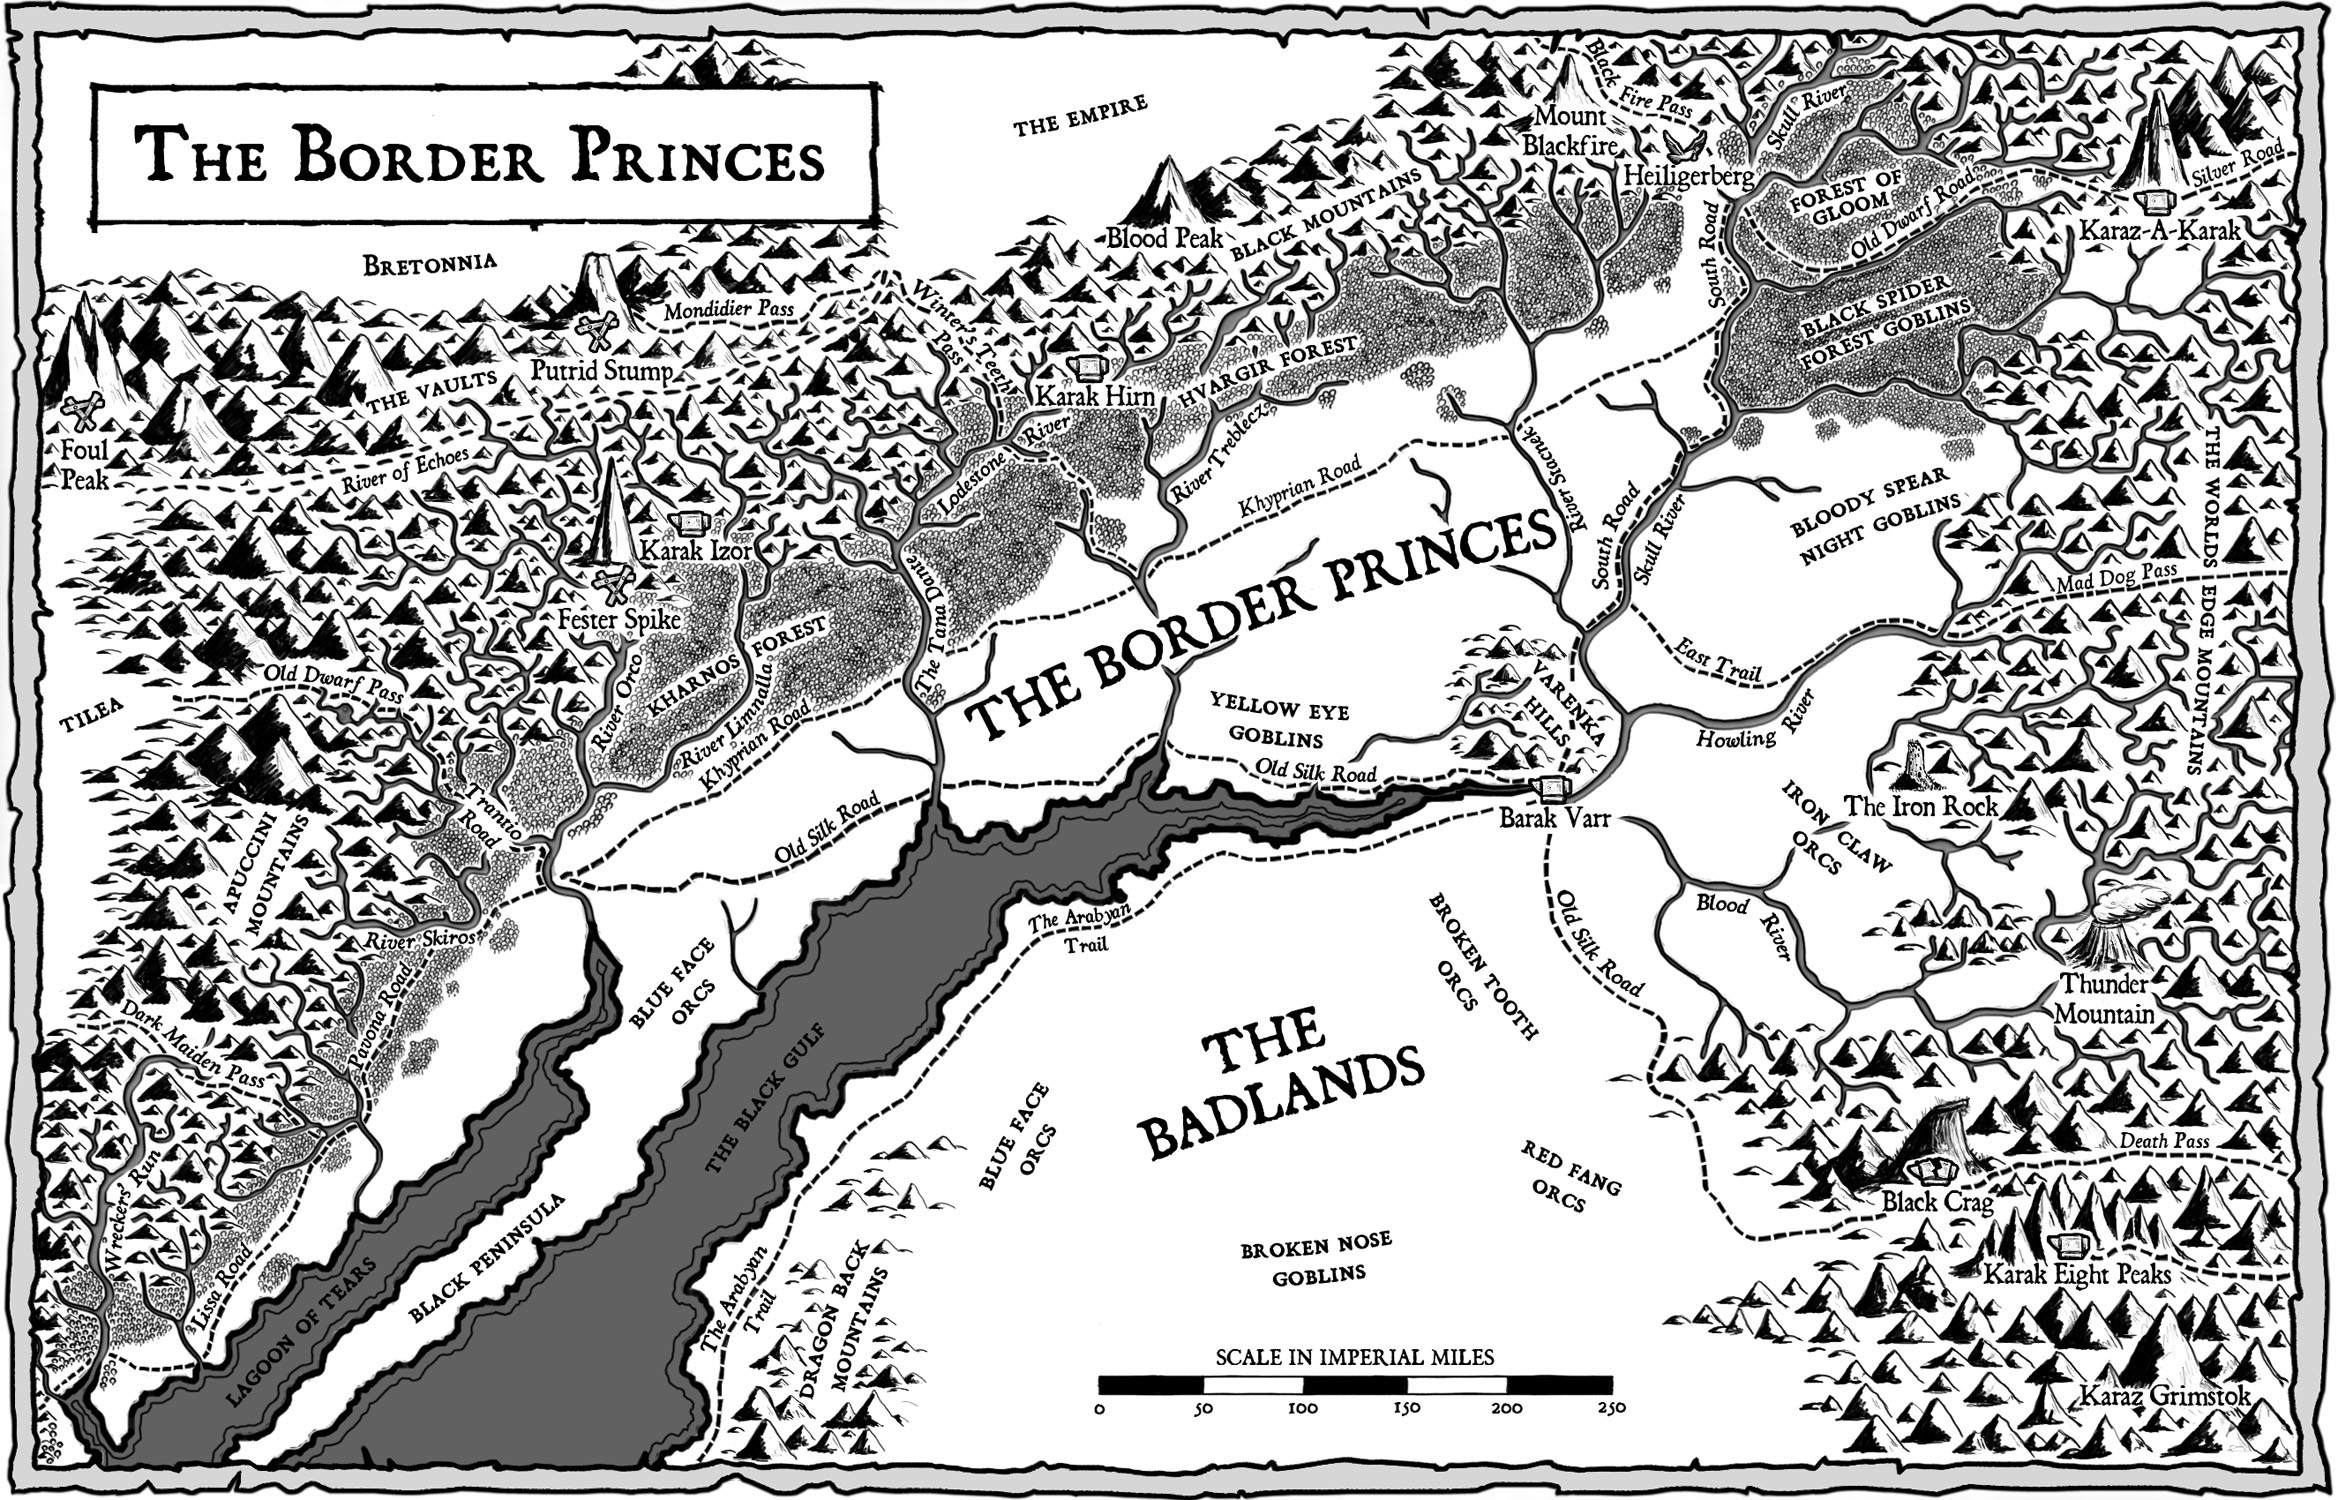 the survival of the princes in the tower pdf